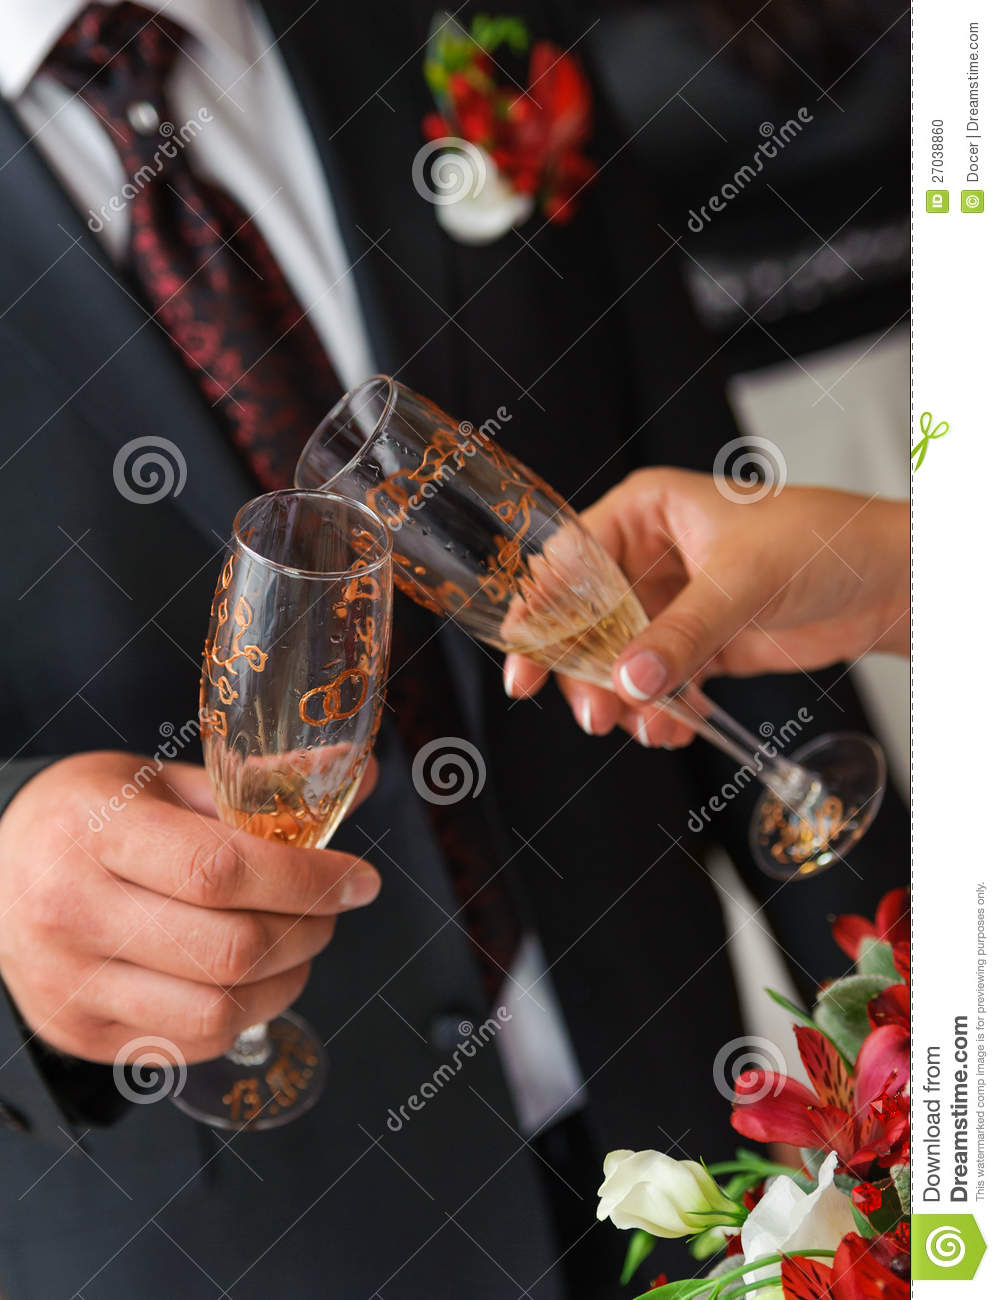 bride and groom a clink glasses wedding couple stock photo image 27038860. Black Bedroom Furniture Sets. Home Design Ideas